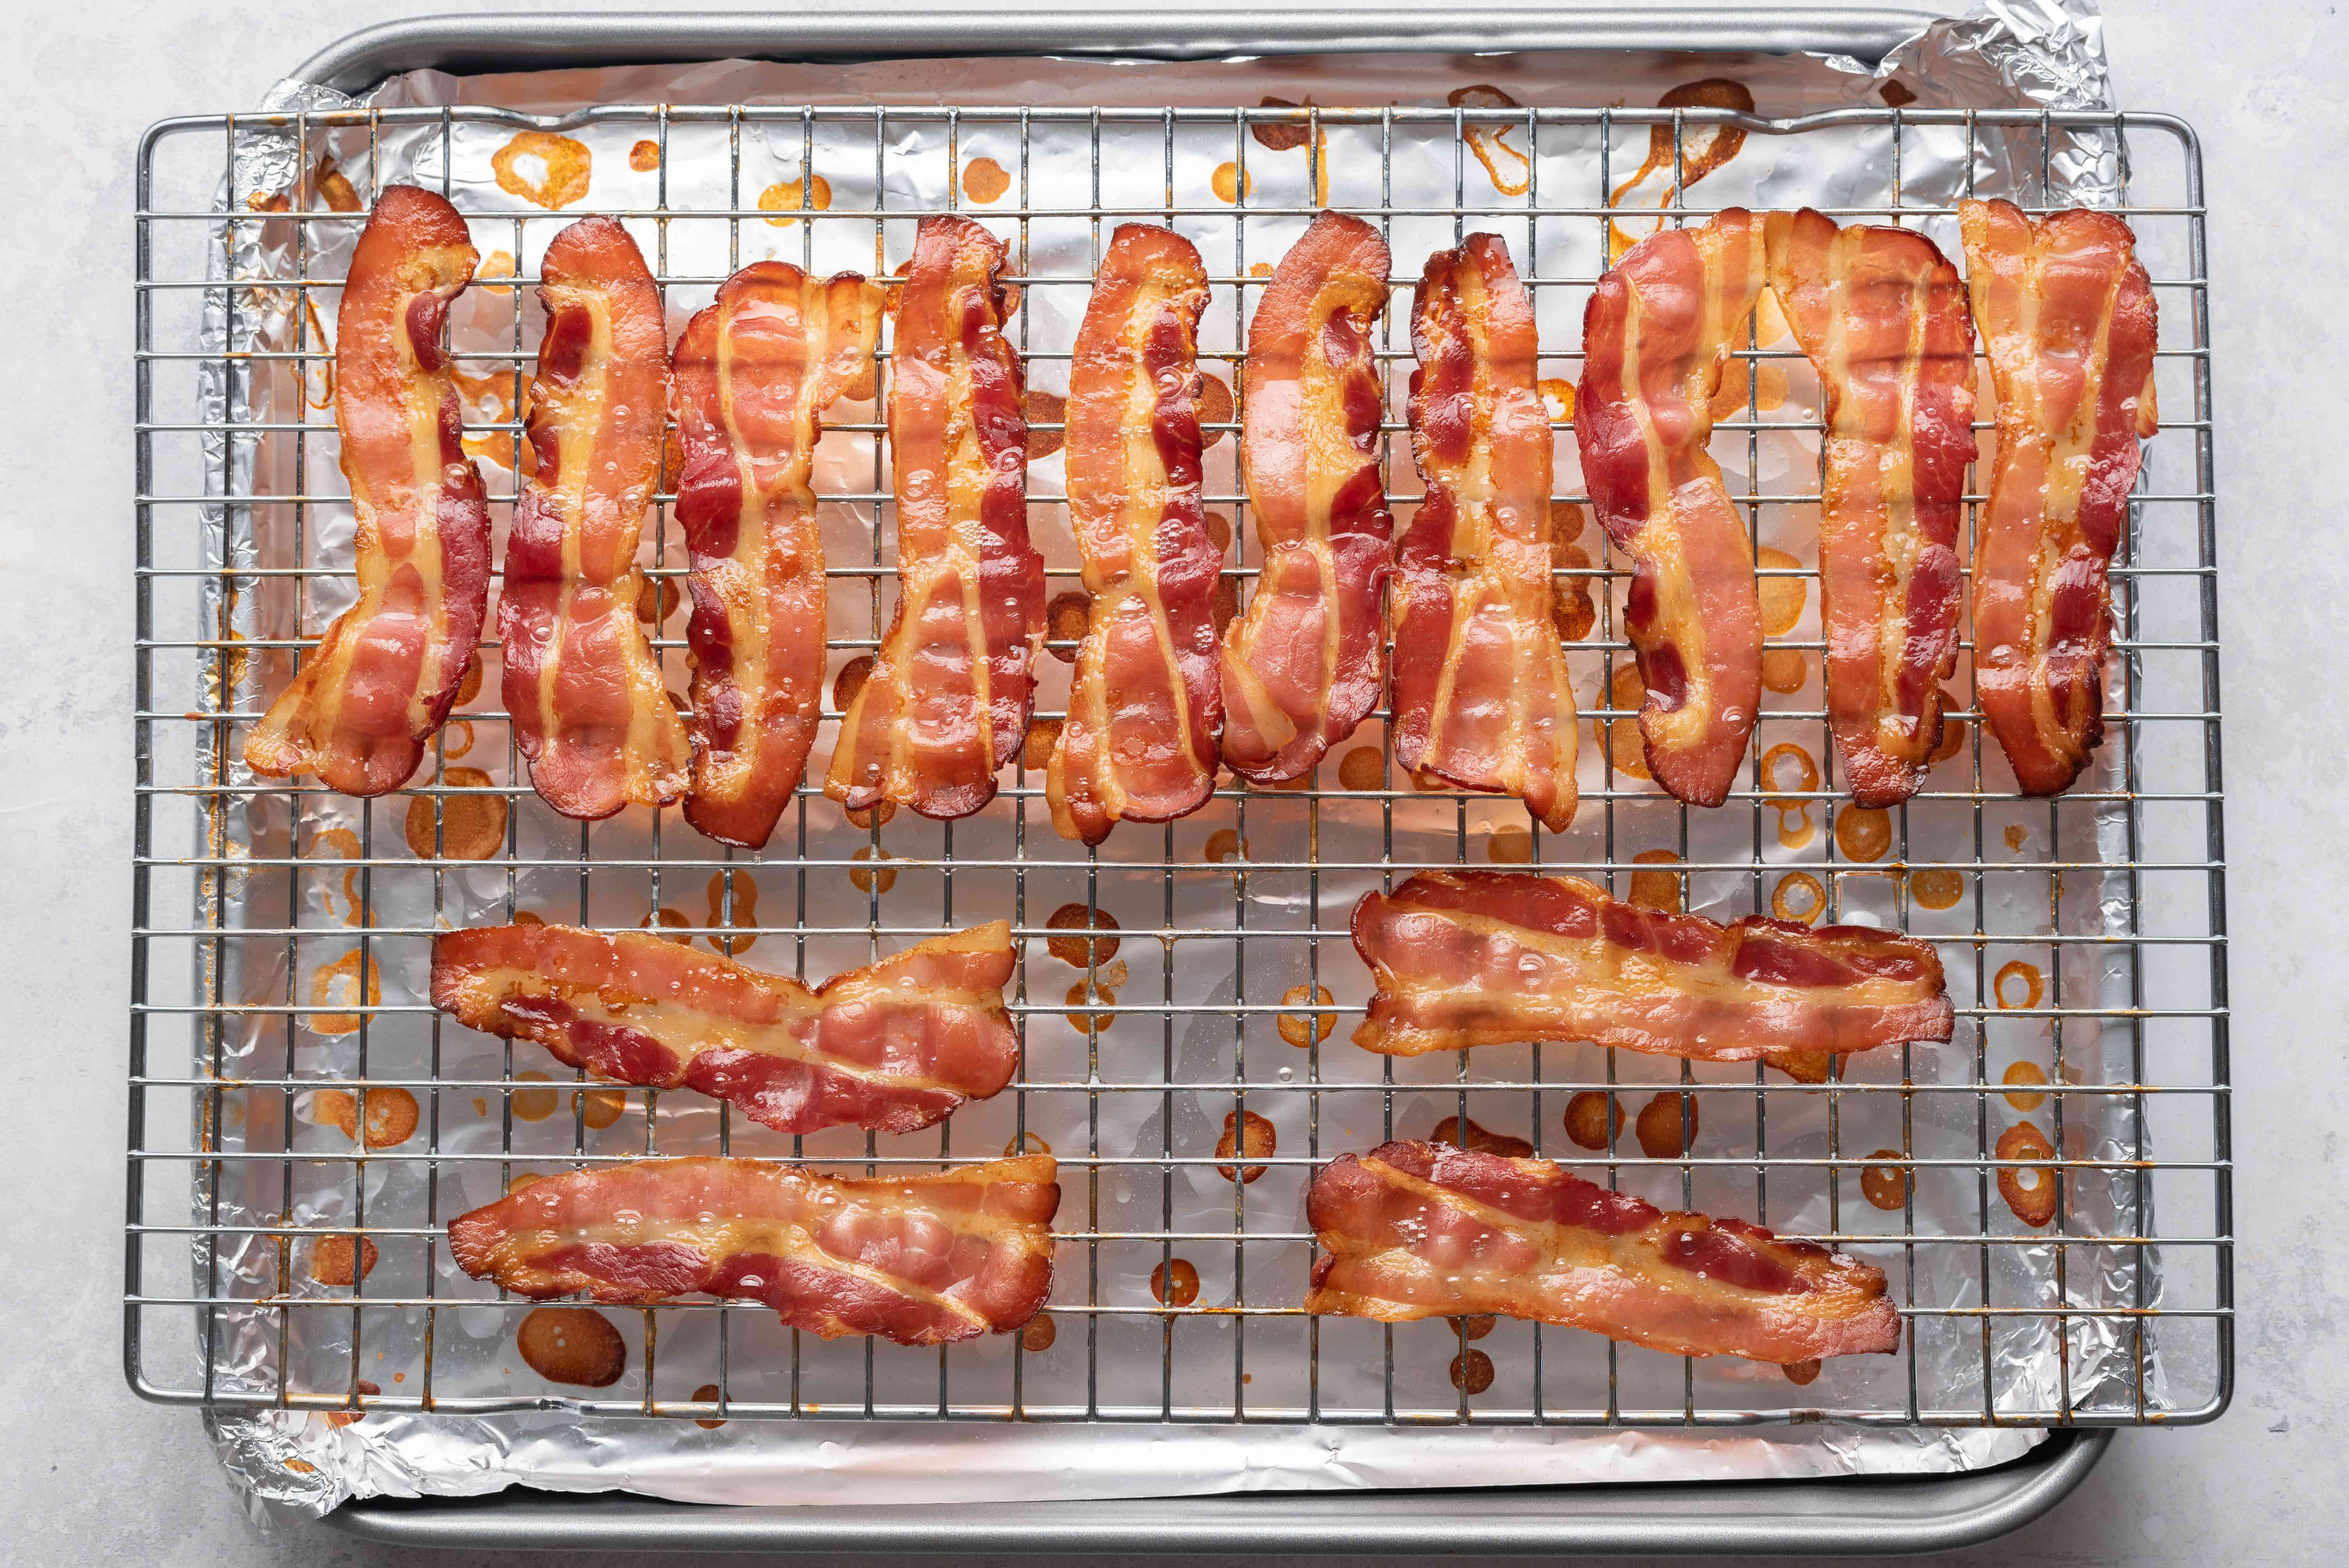 Easy Oven Cooked Bacon on the rack